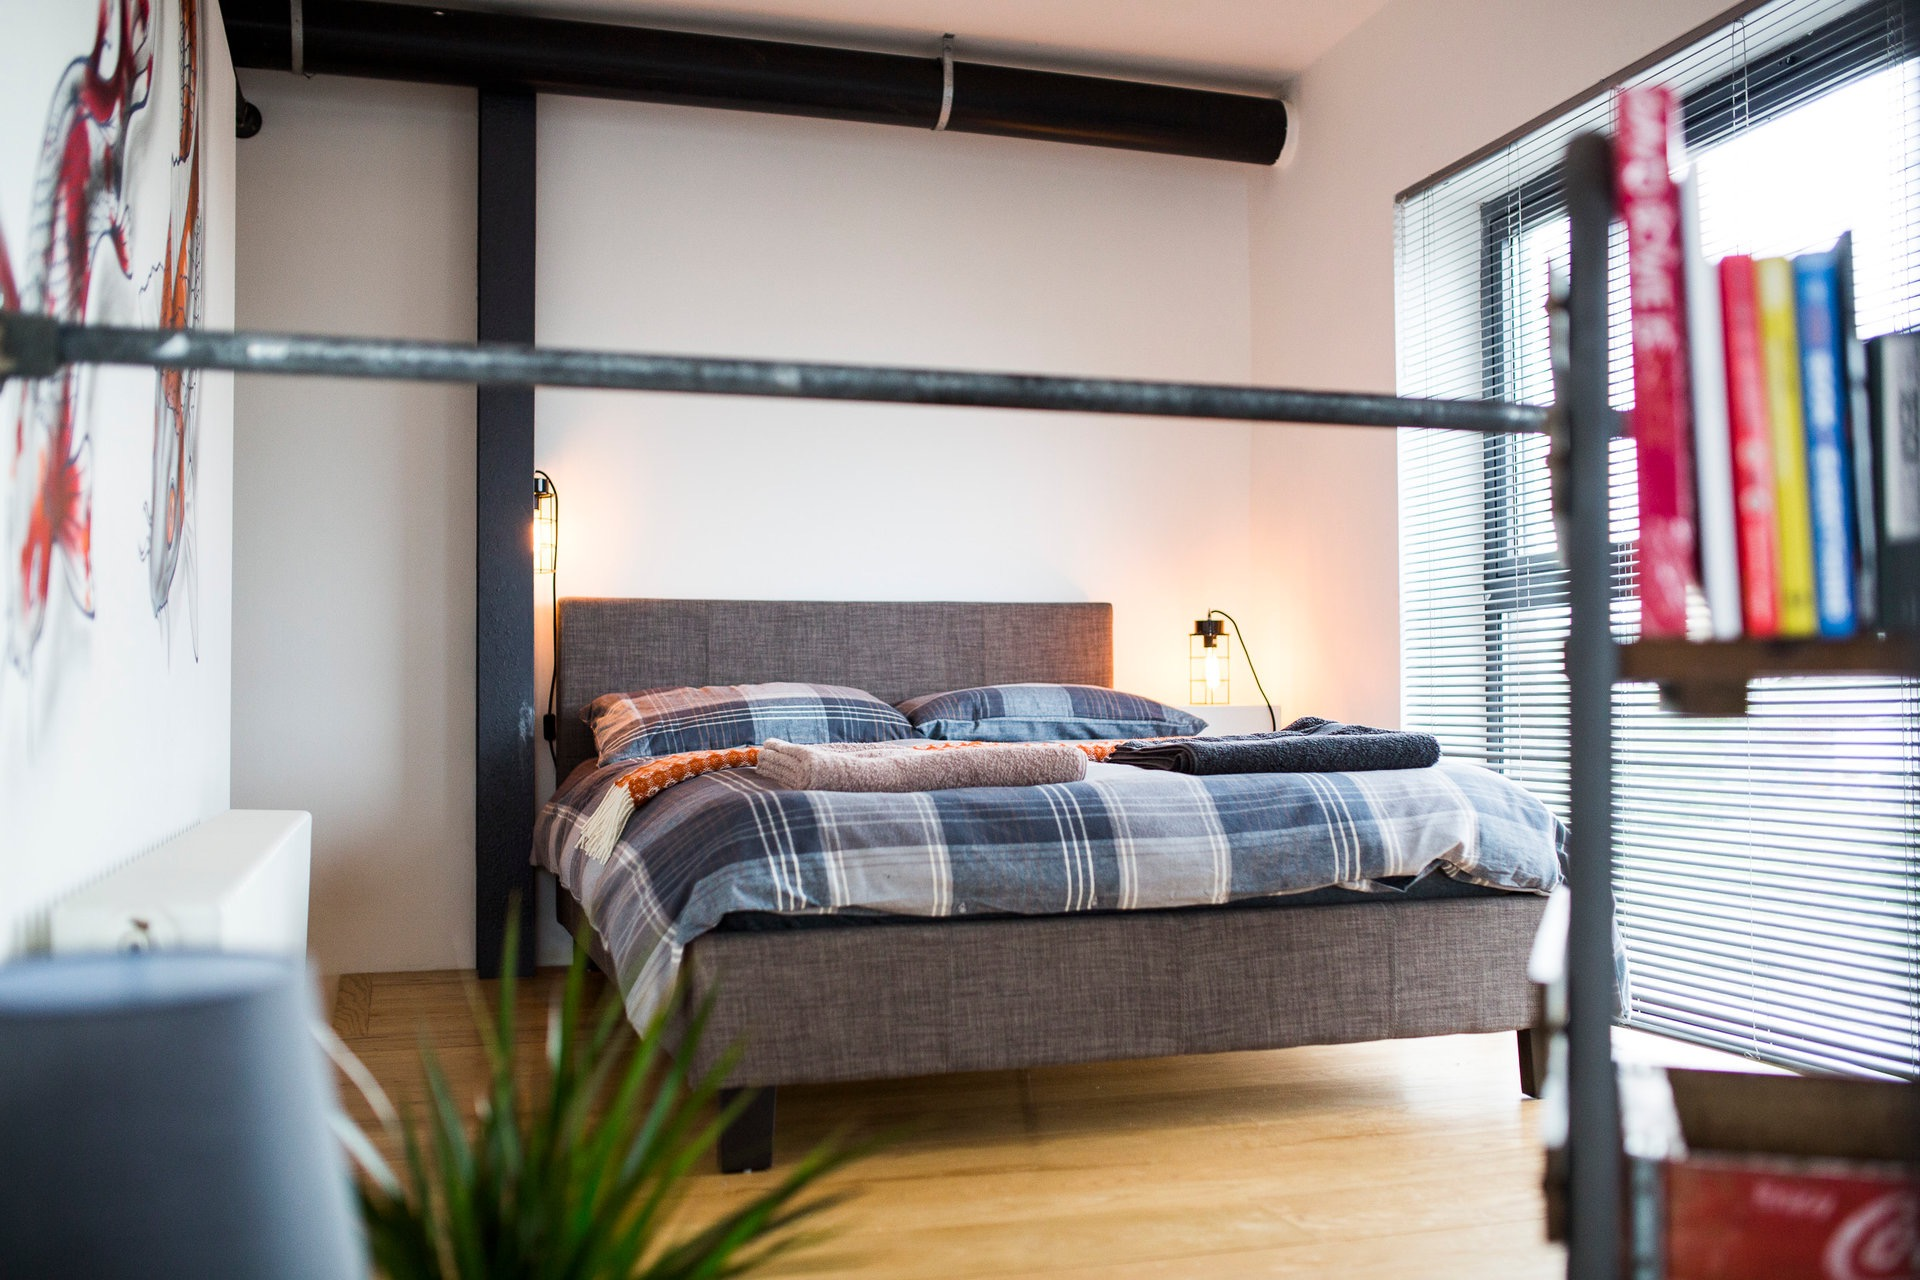 Bedding at Paintworks Apartments - Citybase Apartments